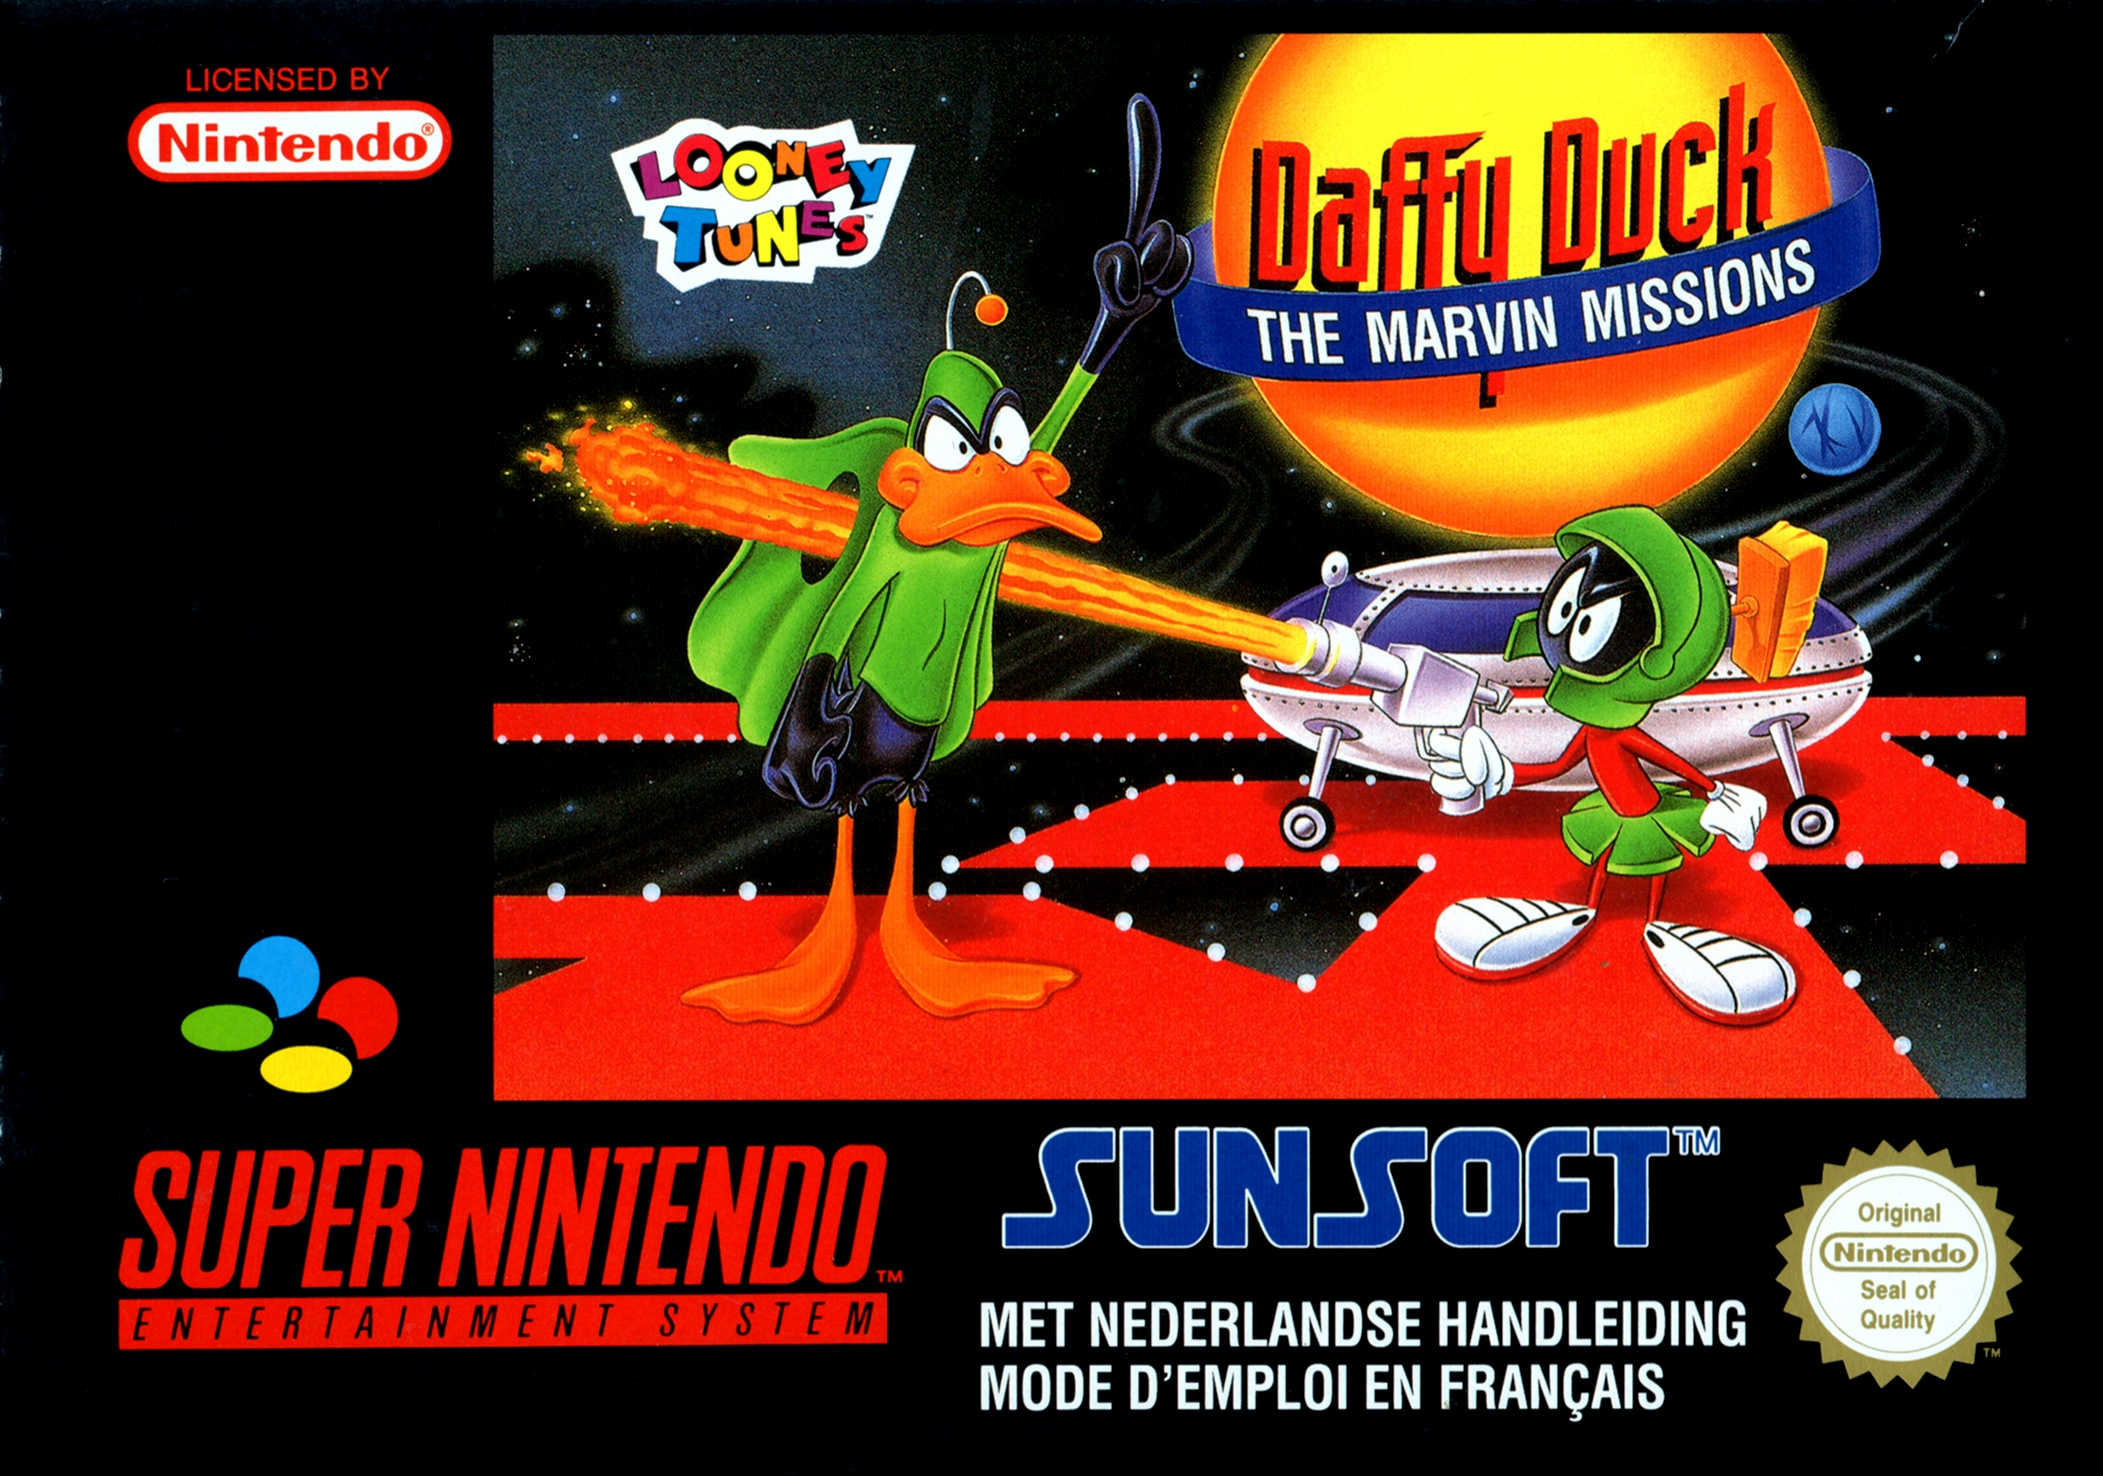 Daffy Duck The Marvin Missions Details Launchbox Games